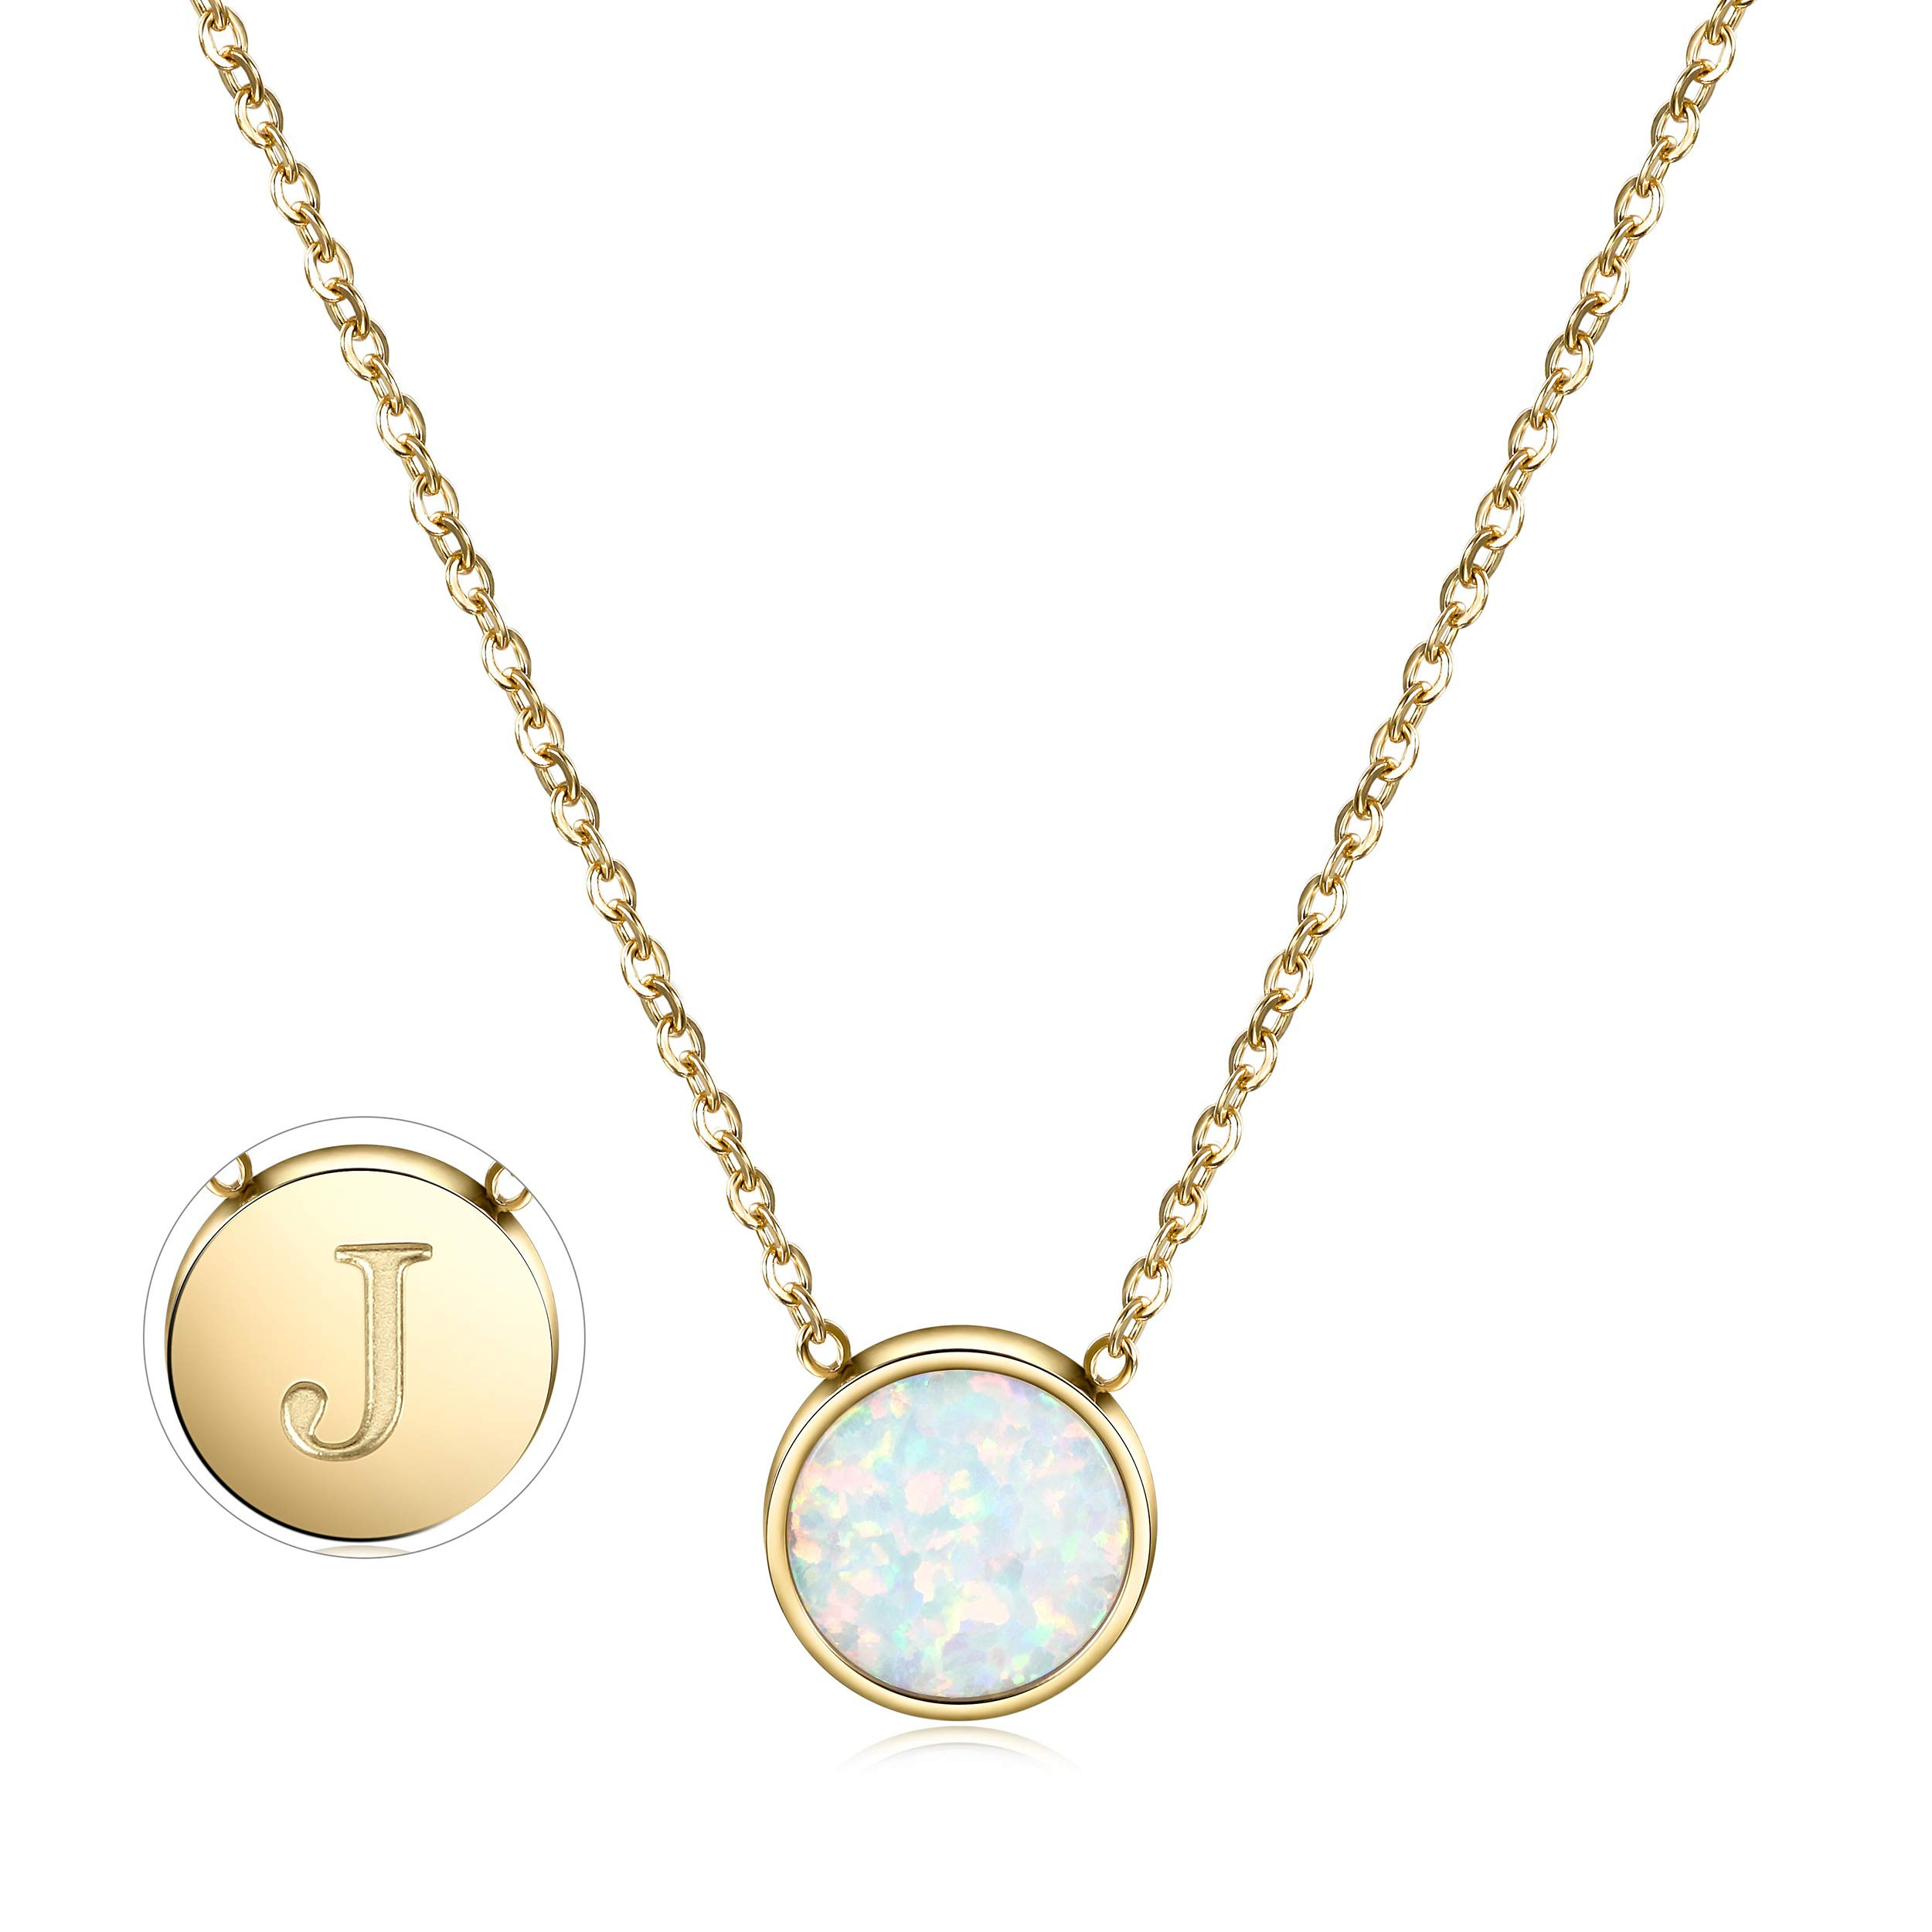 CIUNOFOR Opal Necklace Gold Plated Round Disc Initial Necklace Engraved Letter J with Adjustable Chain Pendant Enhancers for Women Girls